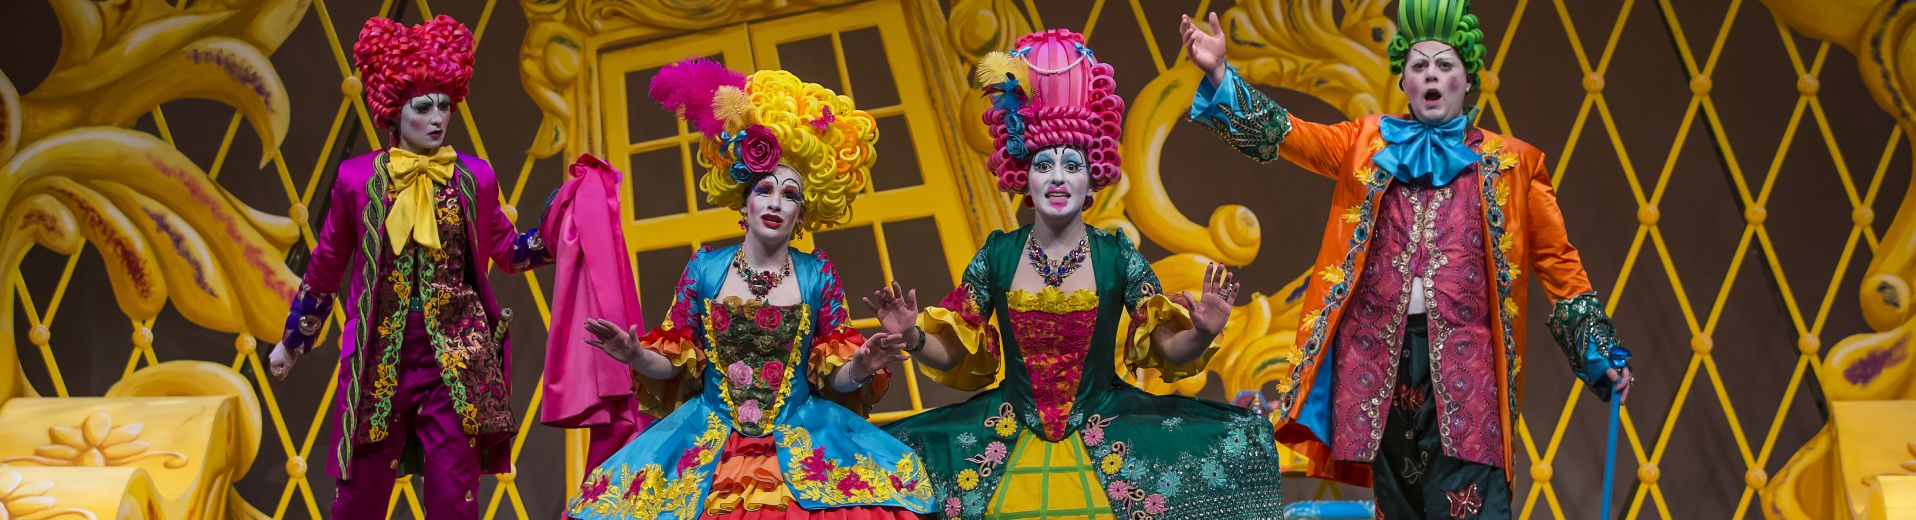 4 singers on stage in color costume in front of an ornate yellow backdrop